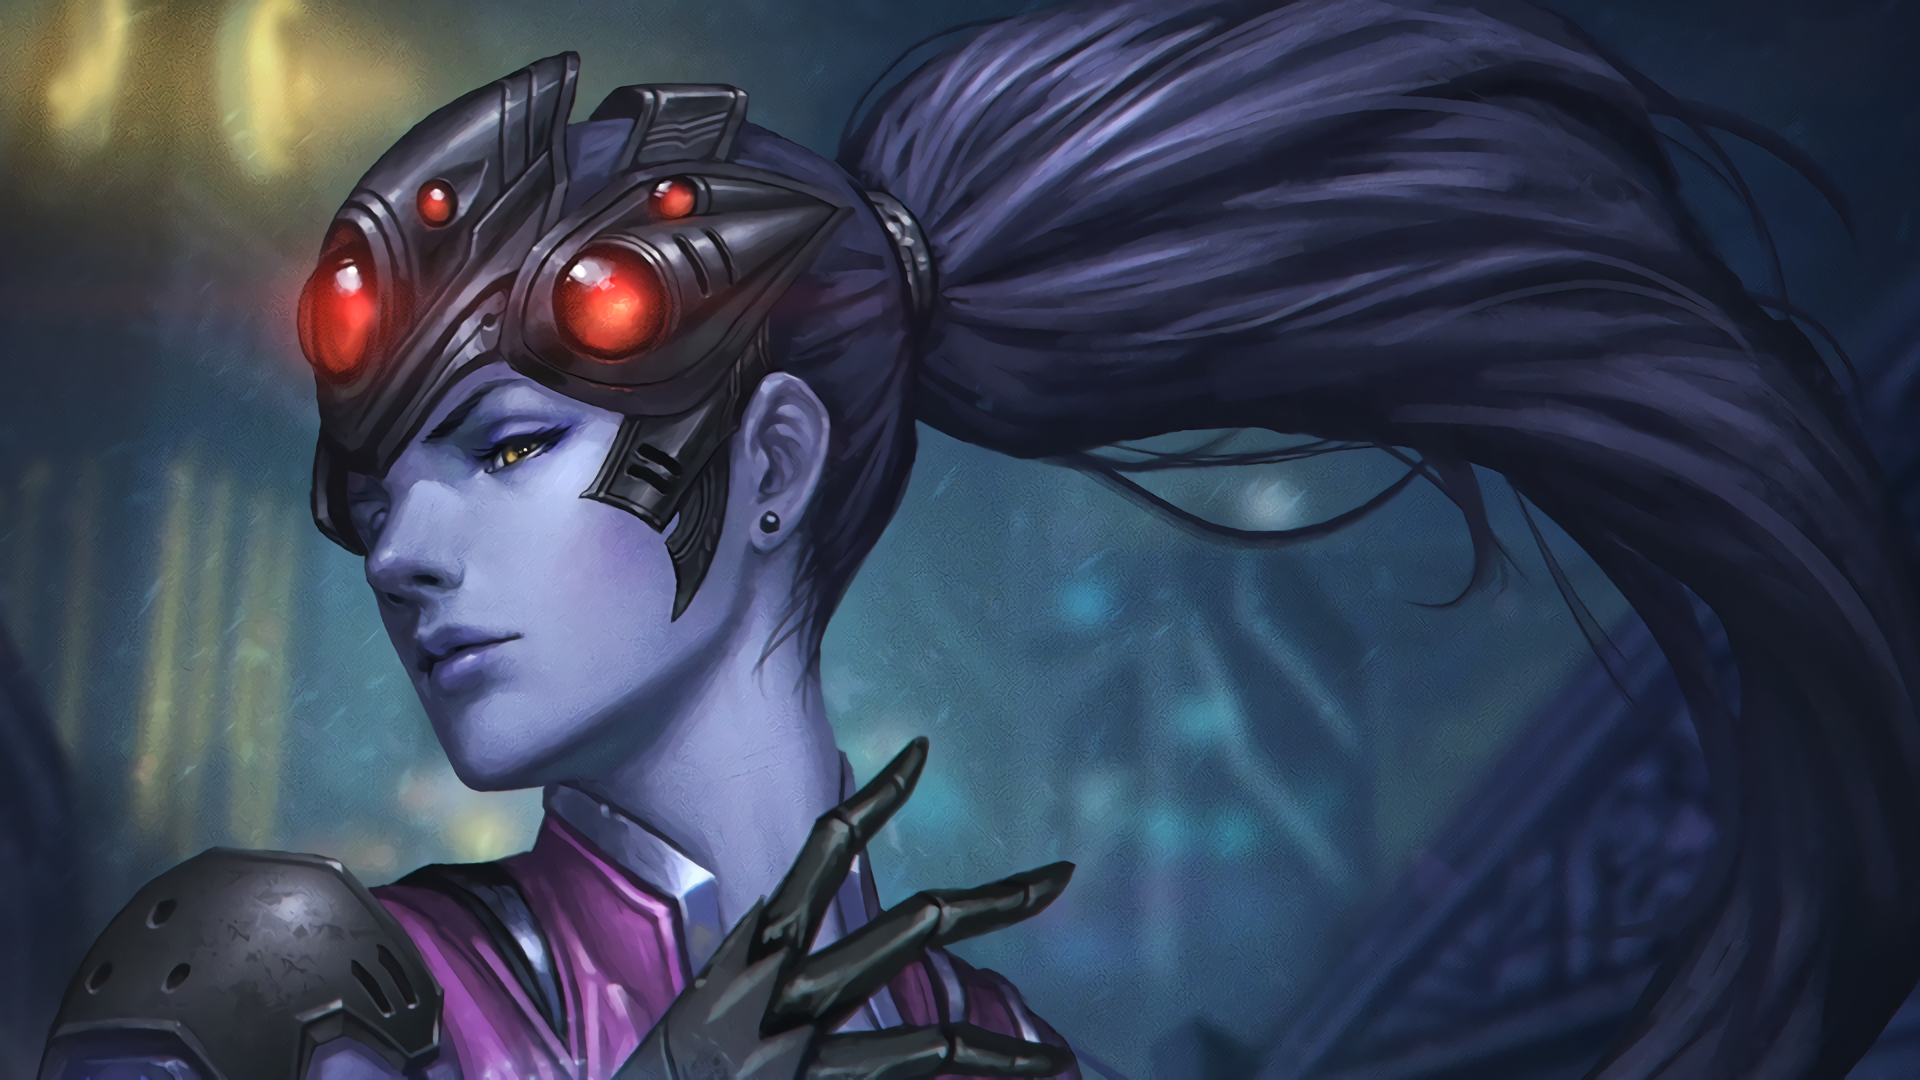 widowmaker overwatch wallpaper 1920x1080 - photo #7